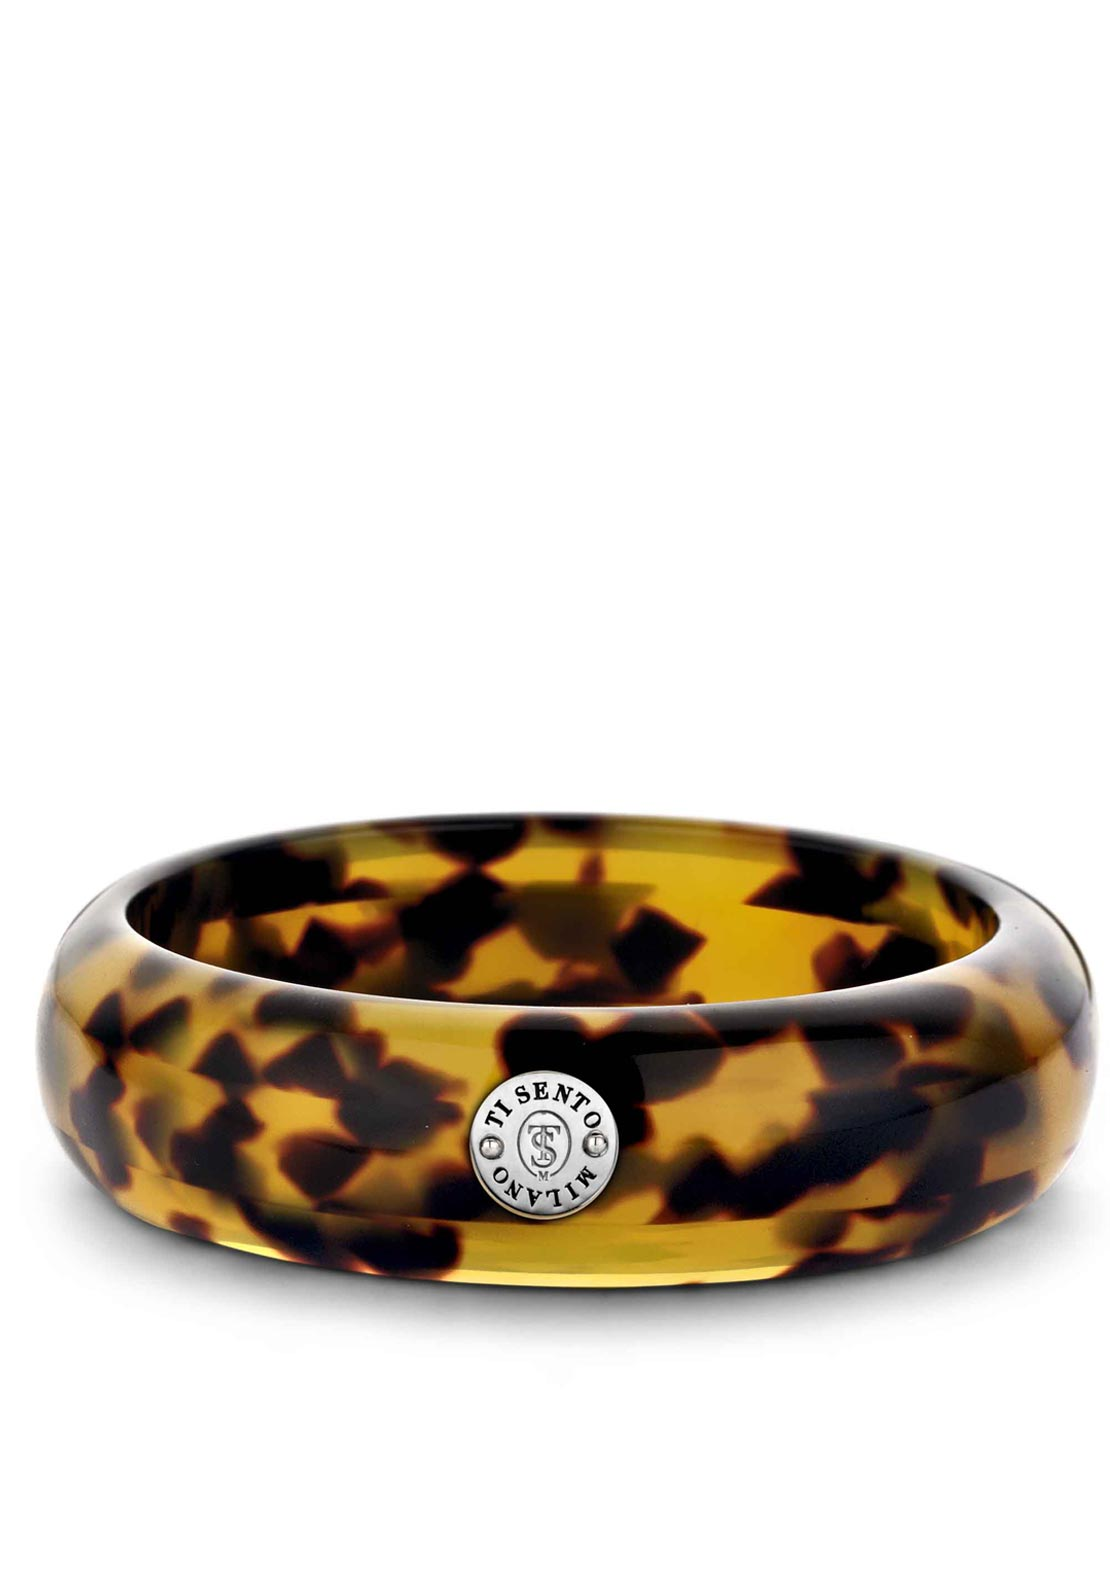 Ti Sento Milano Resin Tortoise Bracelet with Sterling Silver Detailing